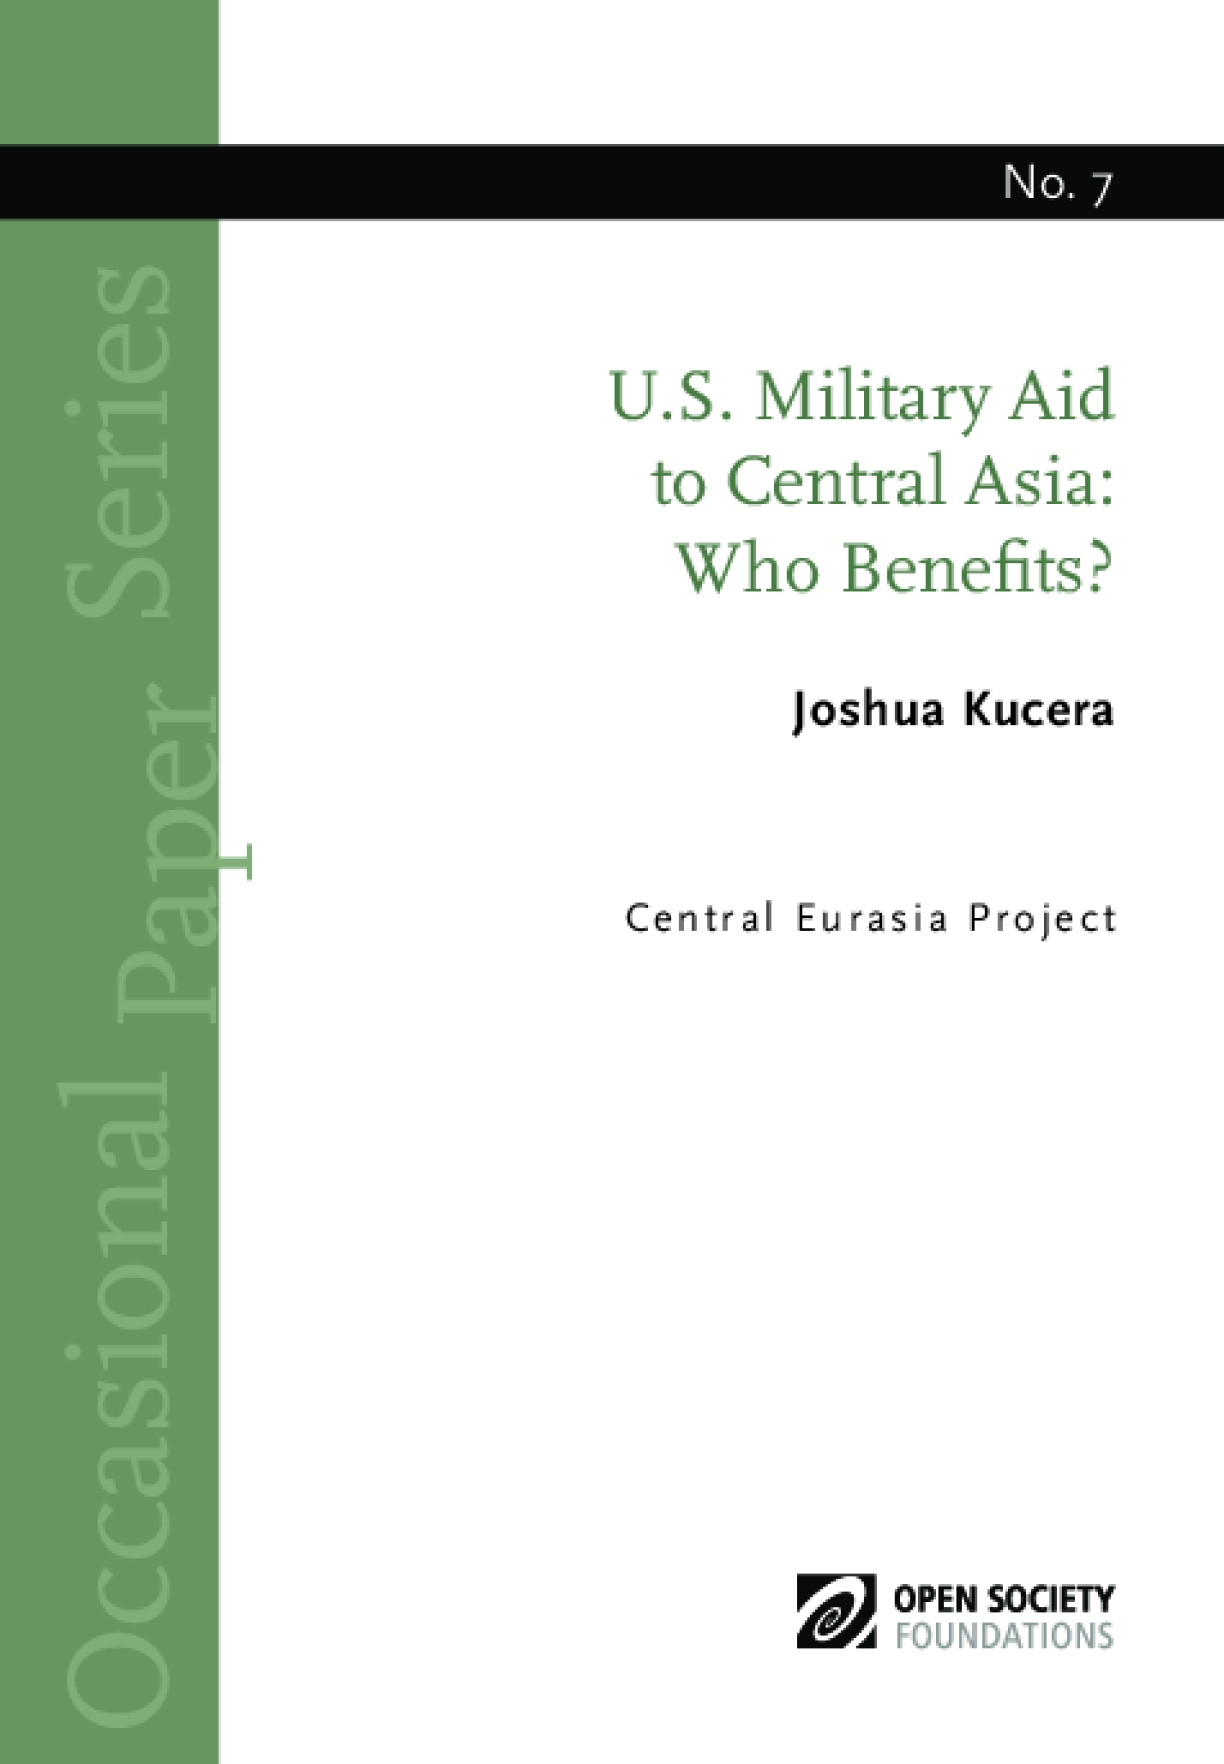 U.S. Military Aid to Central Asia: Who Benefits?